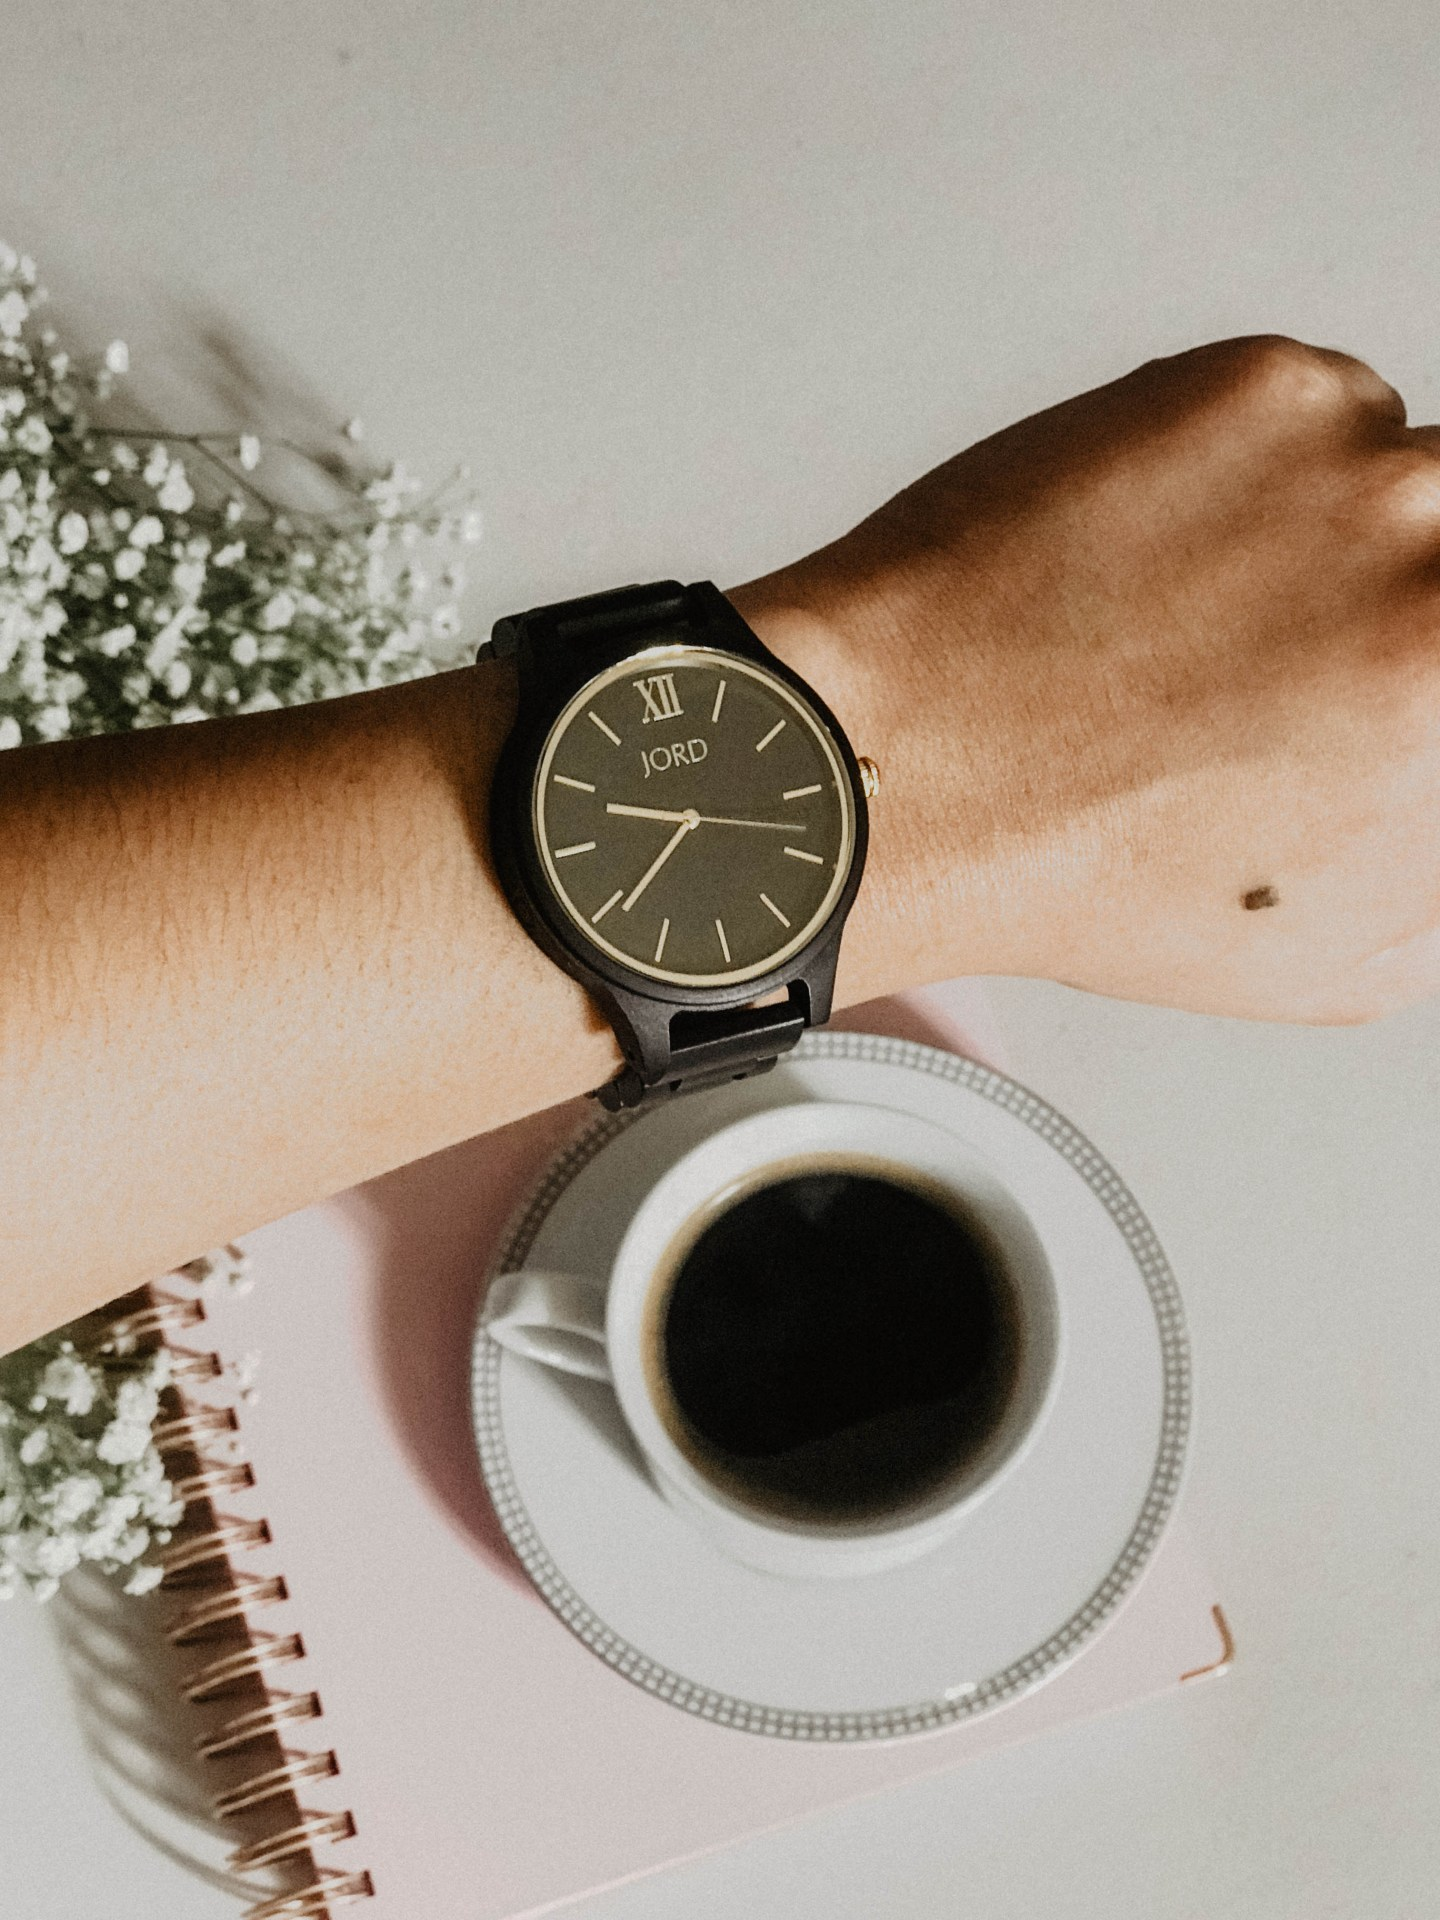 Life After College + JORD Wooden Watch Giveaway